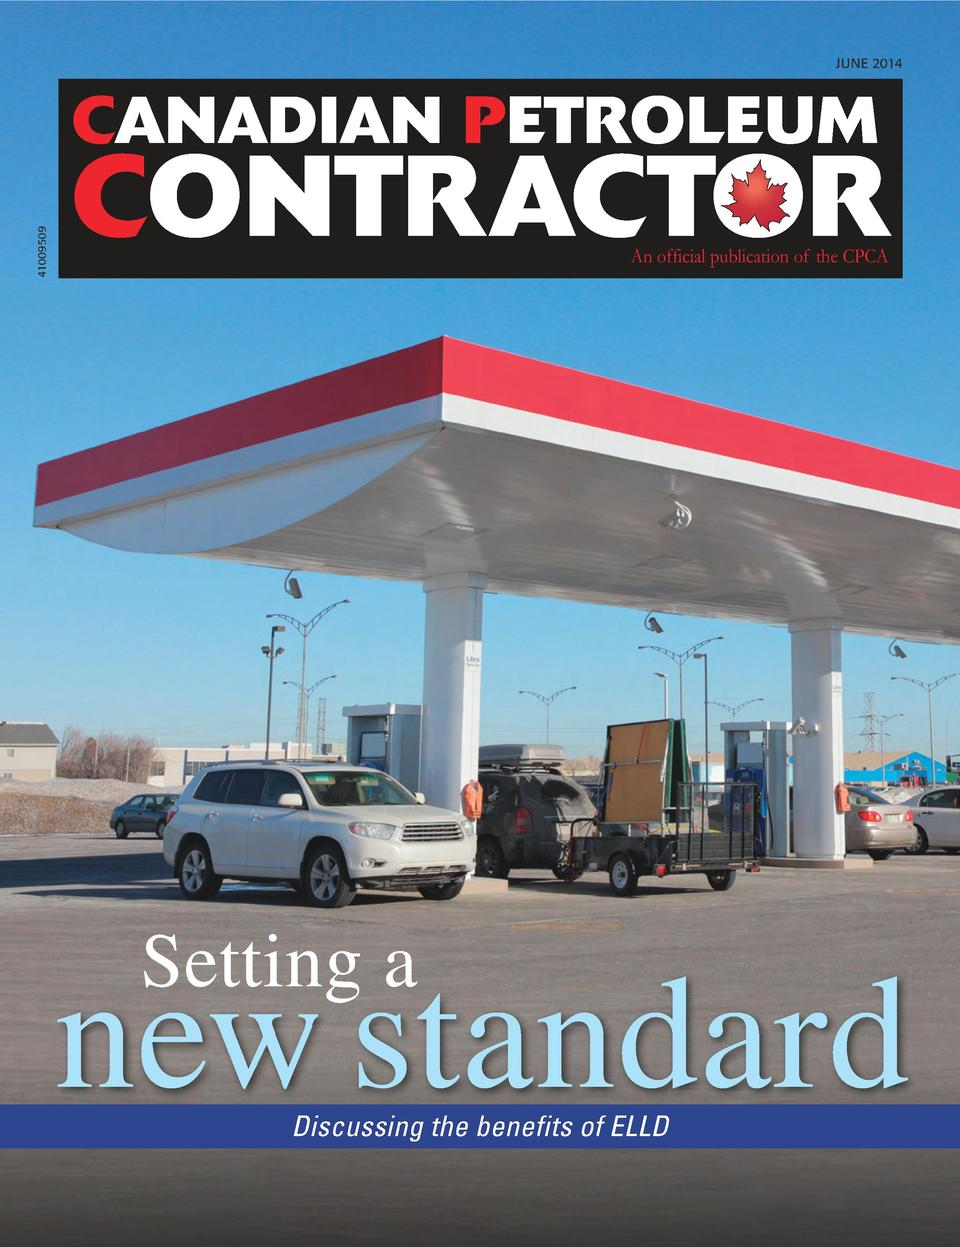 CONTRACTOR An official publication of the CPCA  JUNE 2014  41009509  CANADIAN PETROLEUM  CONTRACTOR An official publicatio...